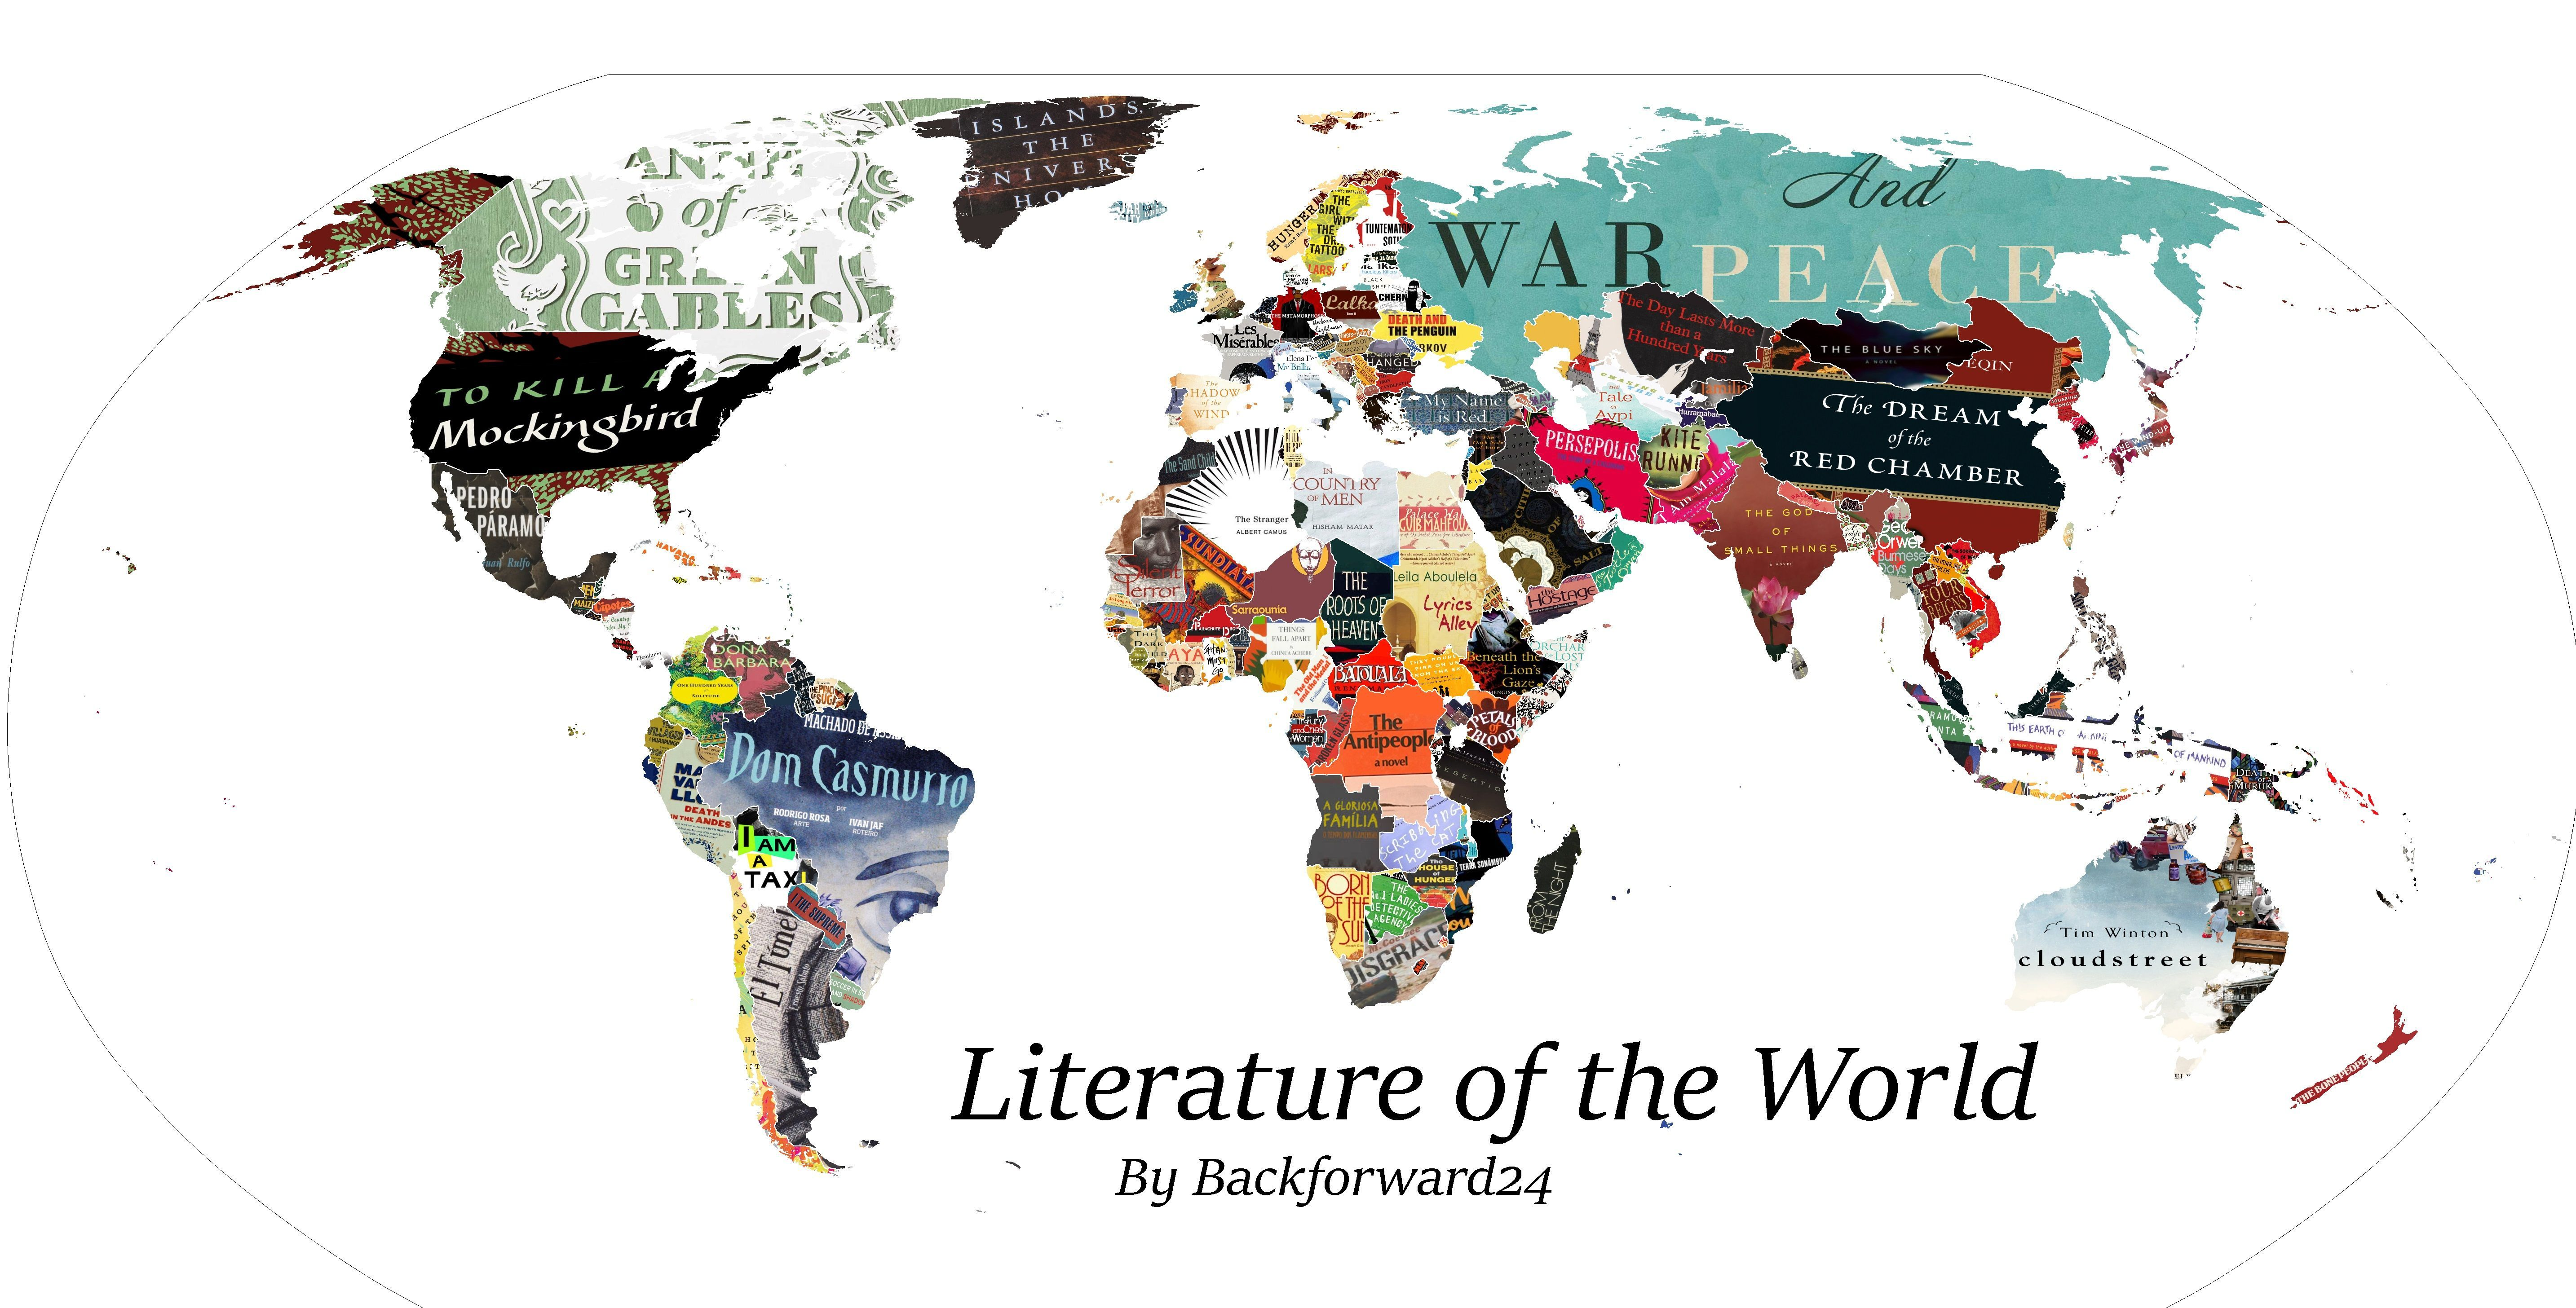 This book map of the world will open up your literary horizons